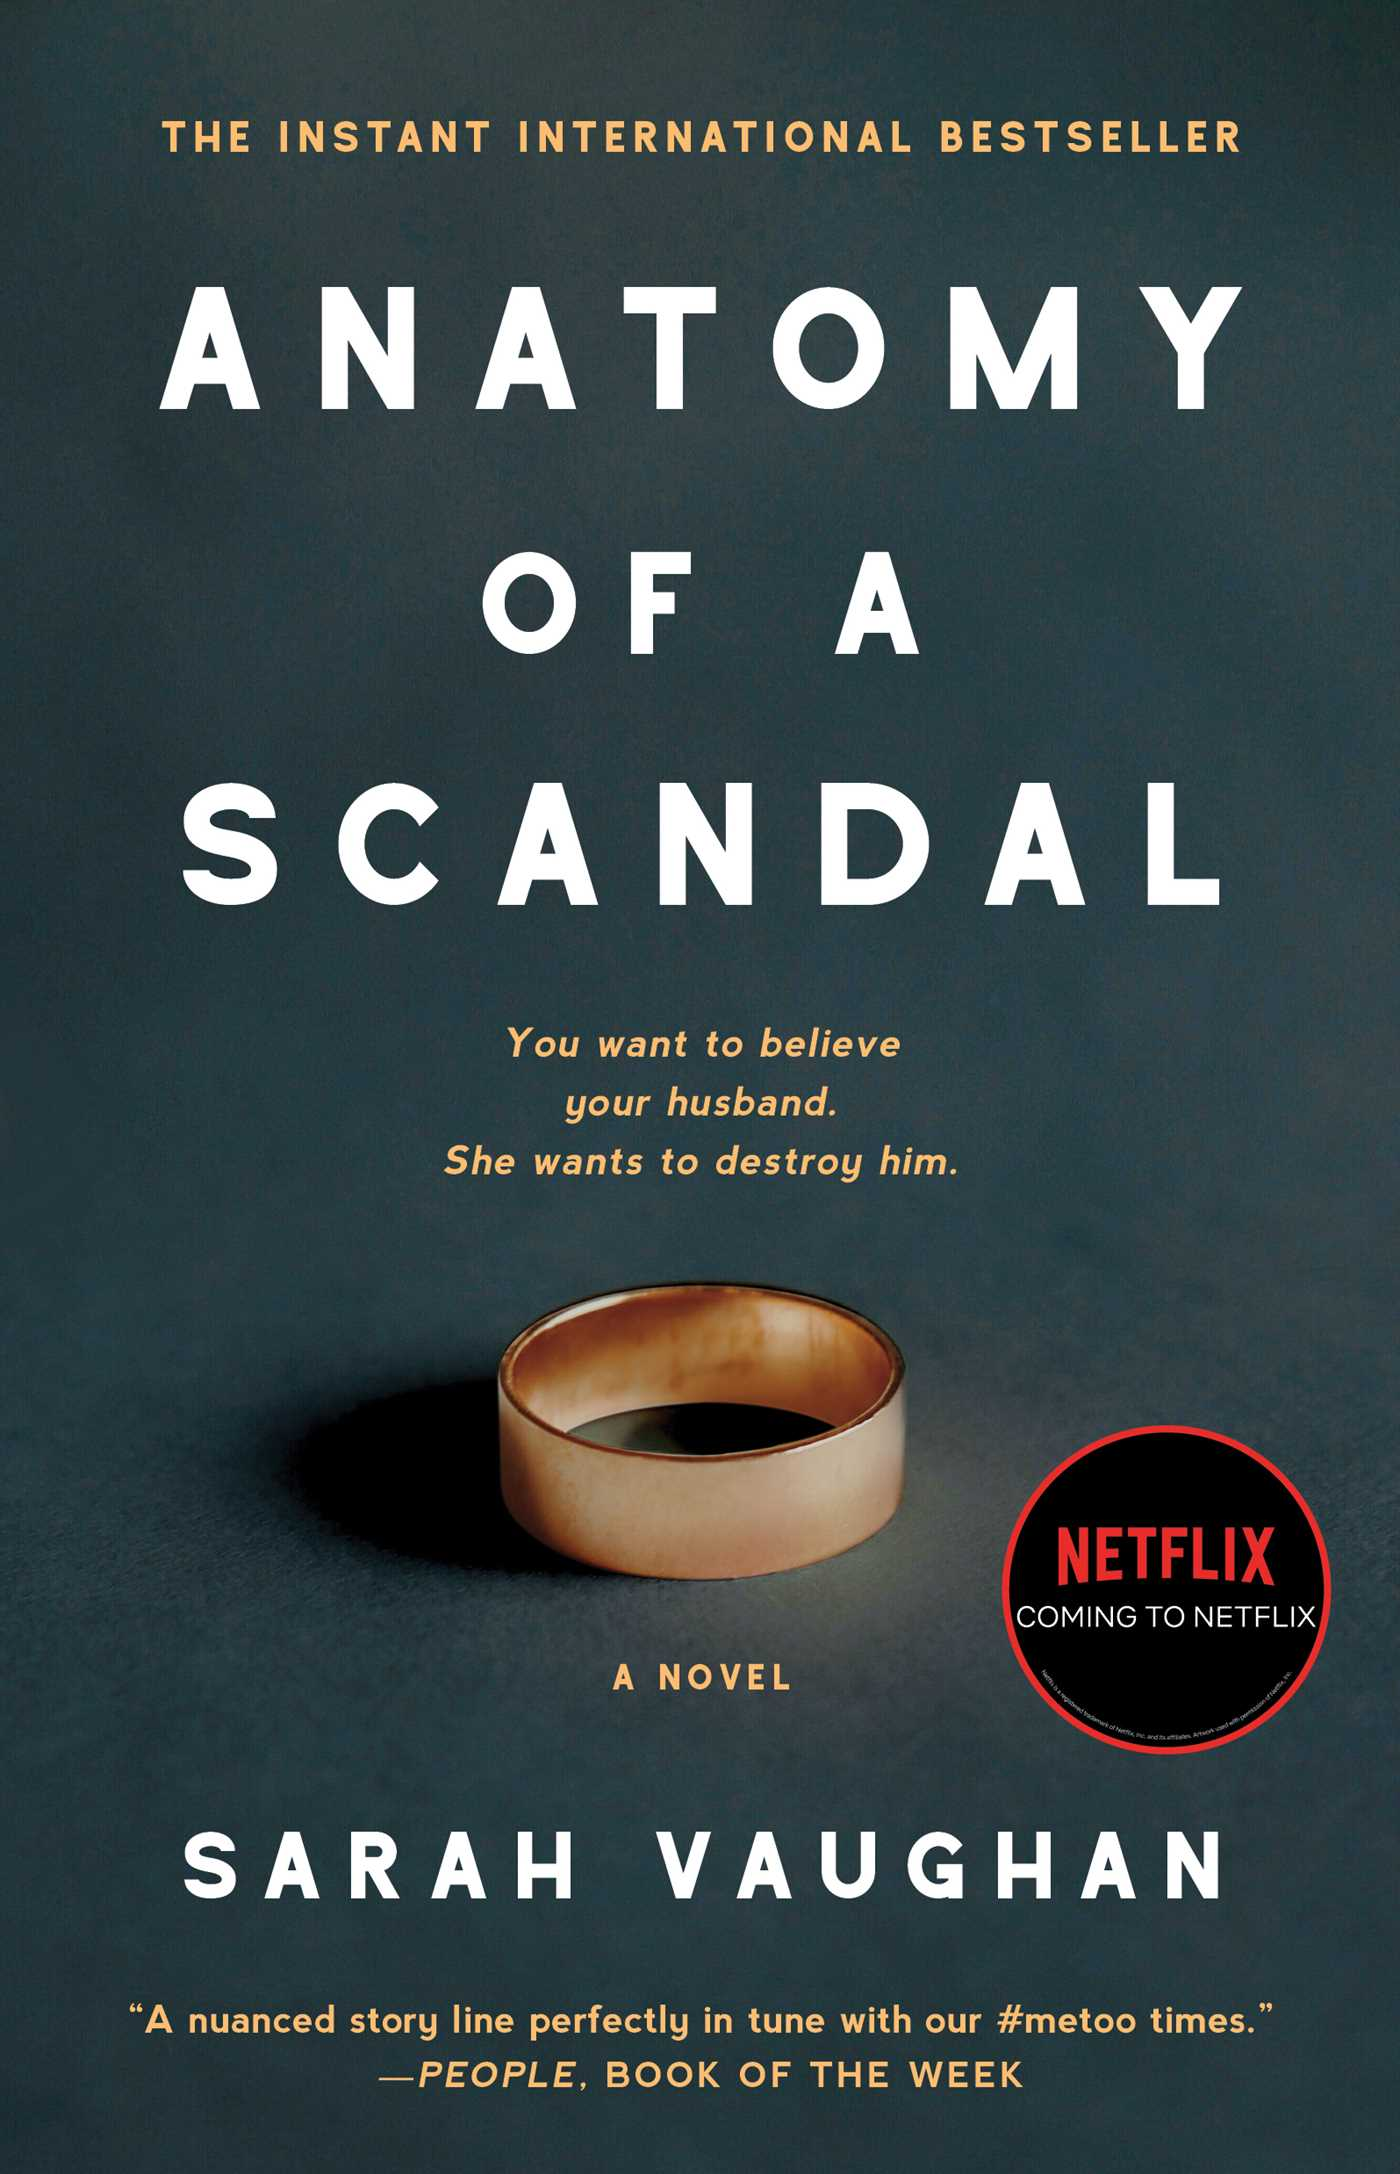 Anatomy of a scandal 9781501172175 hr ...